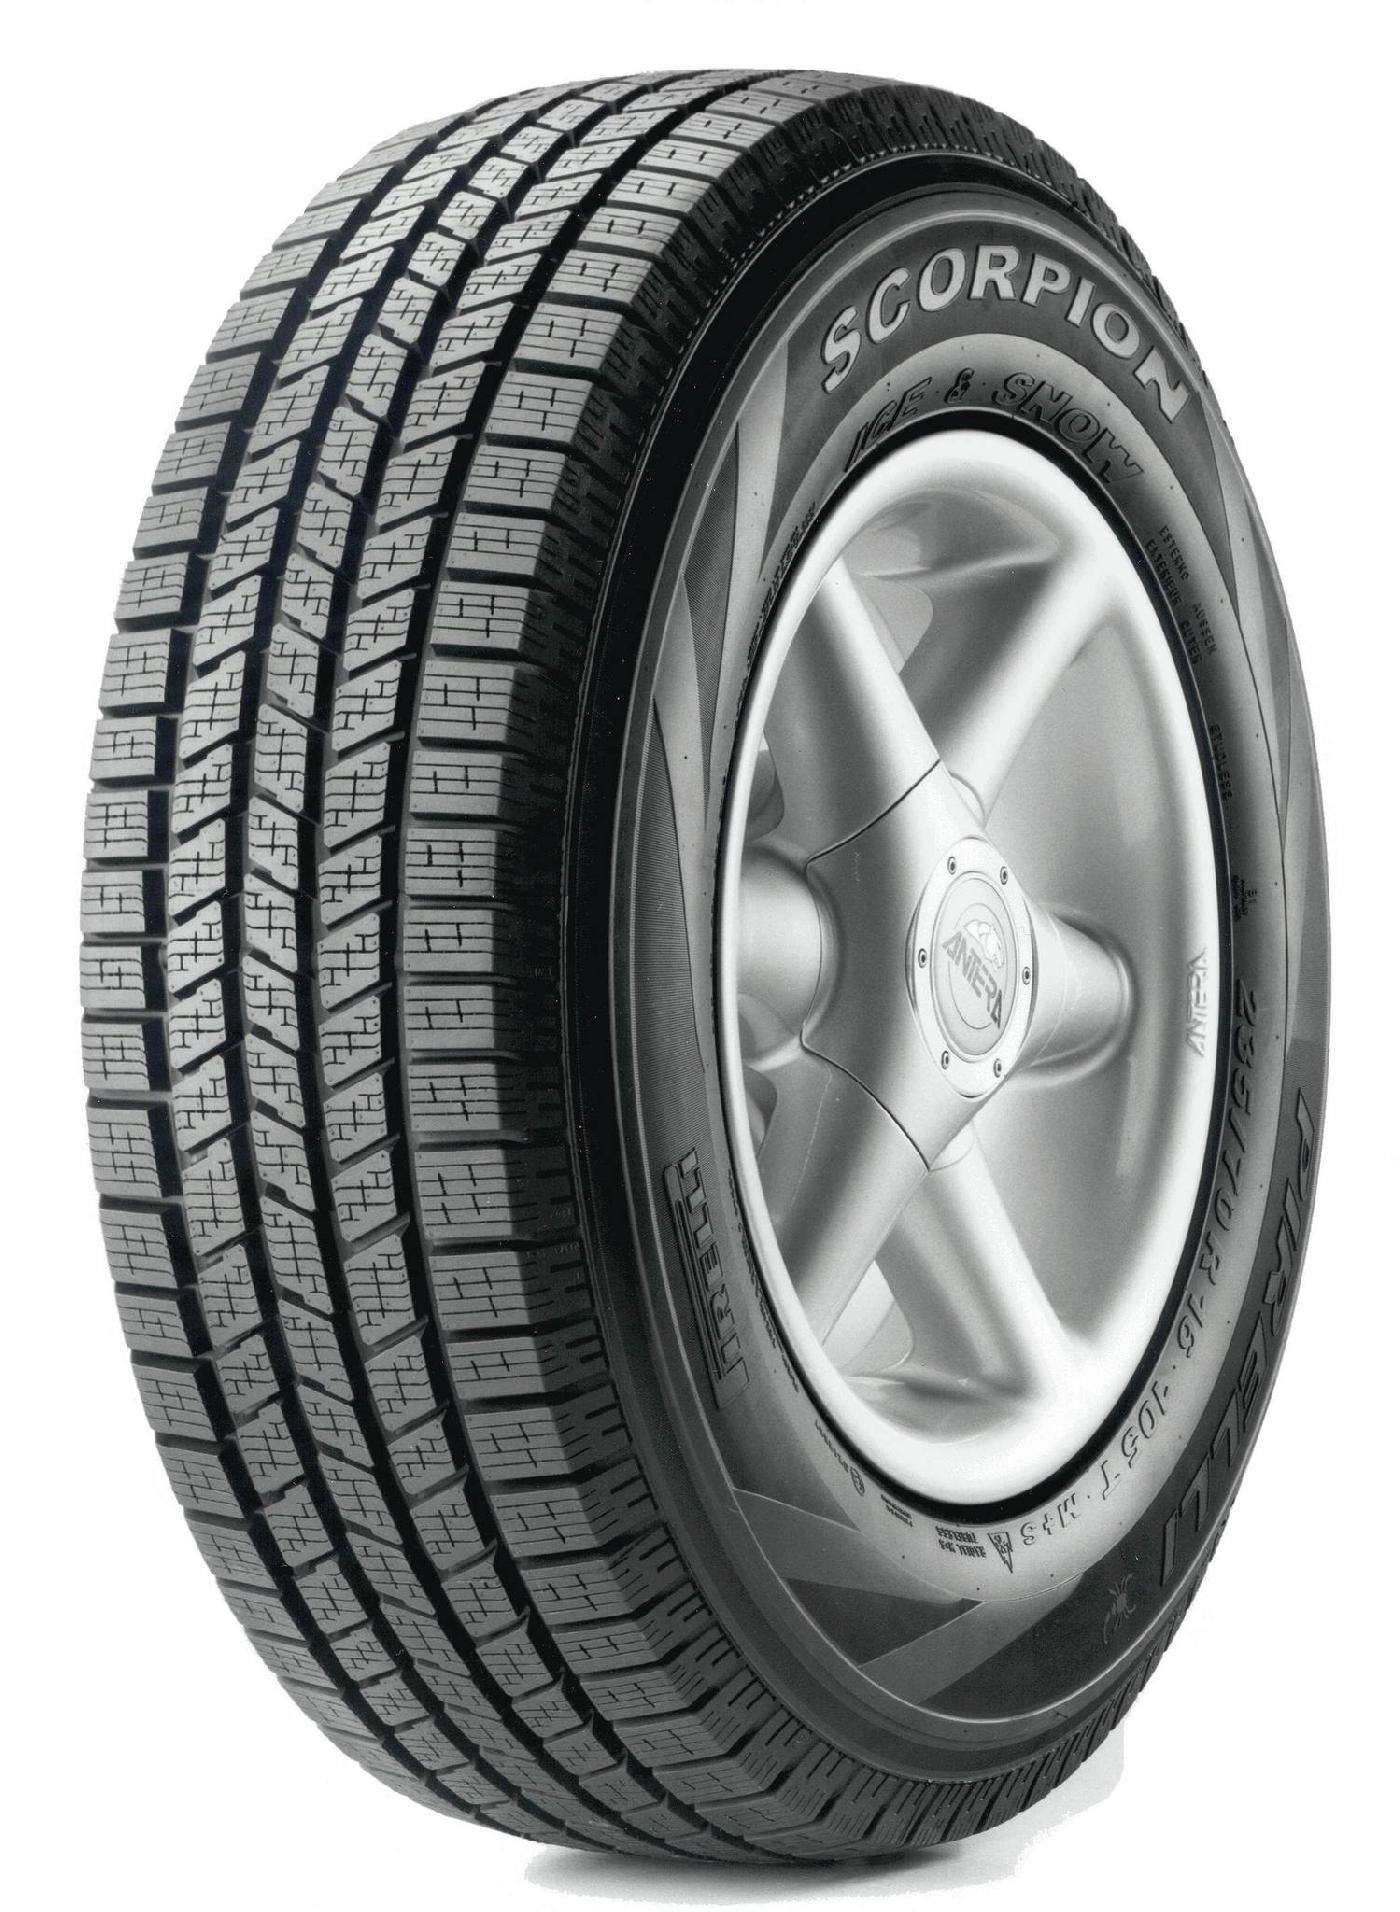 PIRELLI ICE & SNOW SCORPION 265/45 R21 104H